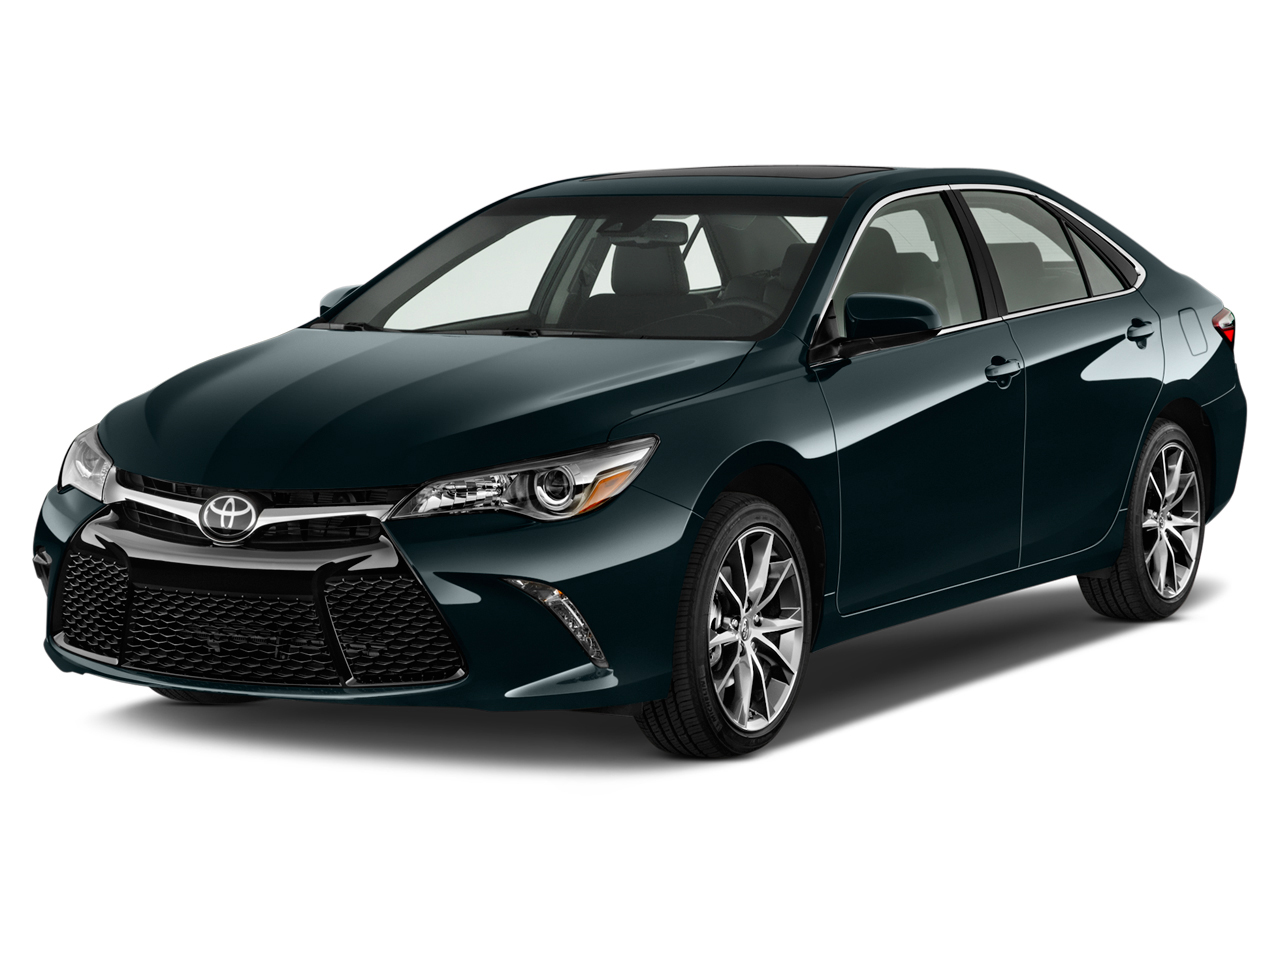 2016 toyota camry performance review the car connection. Black Bedroom Furniture Sets. Home Design Ideas